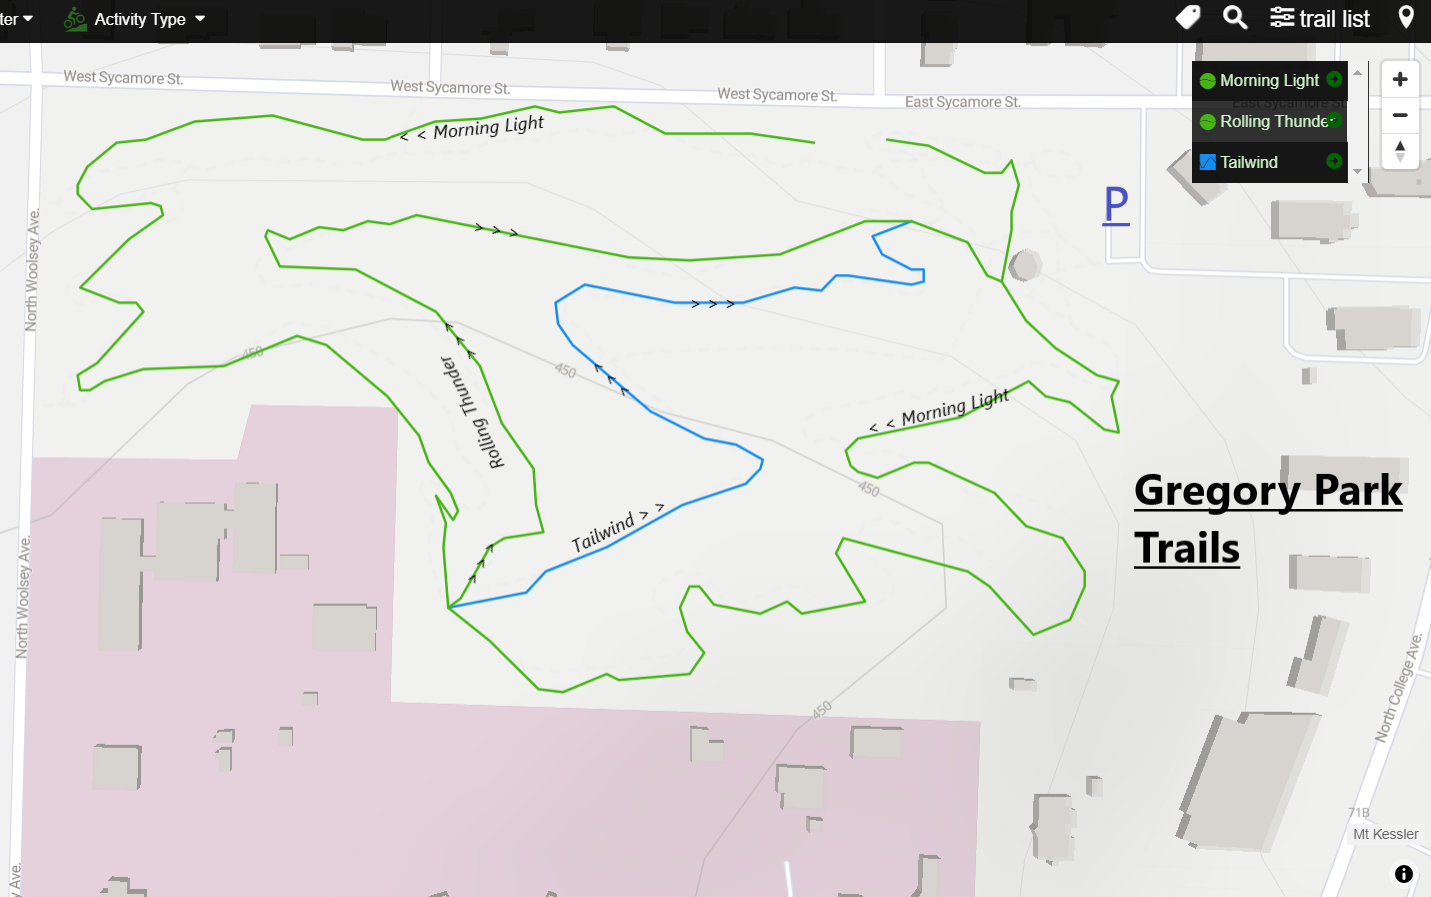 Gregory Park Mountain Bike Trails